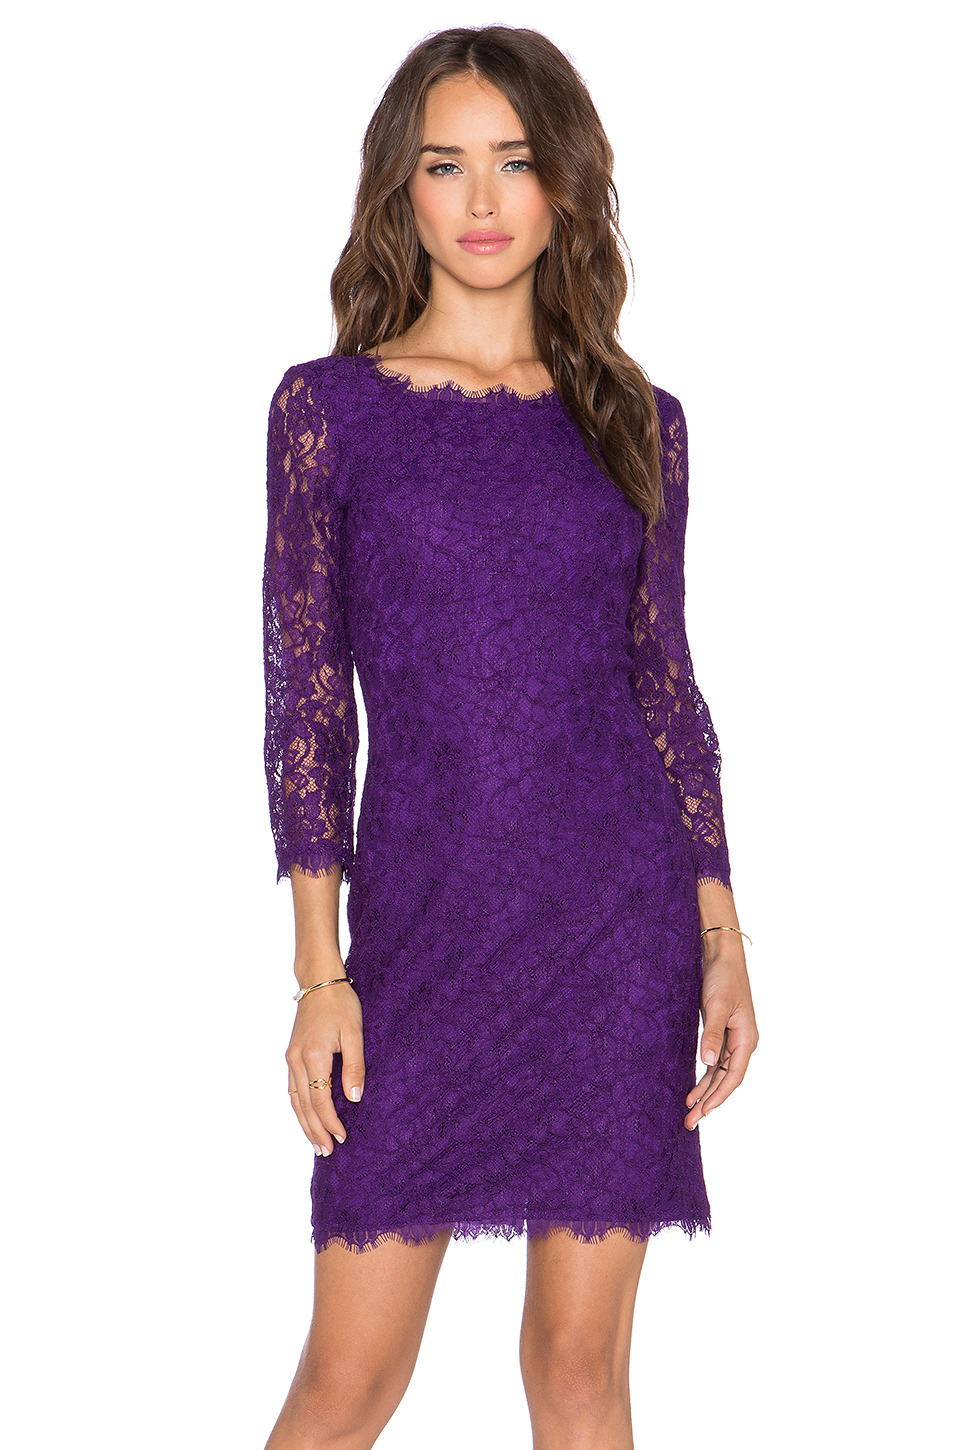 Diane von furstenberg zarita lace sheath dress in purple for Diane von furstenberg clothes